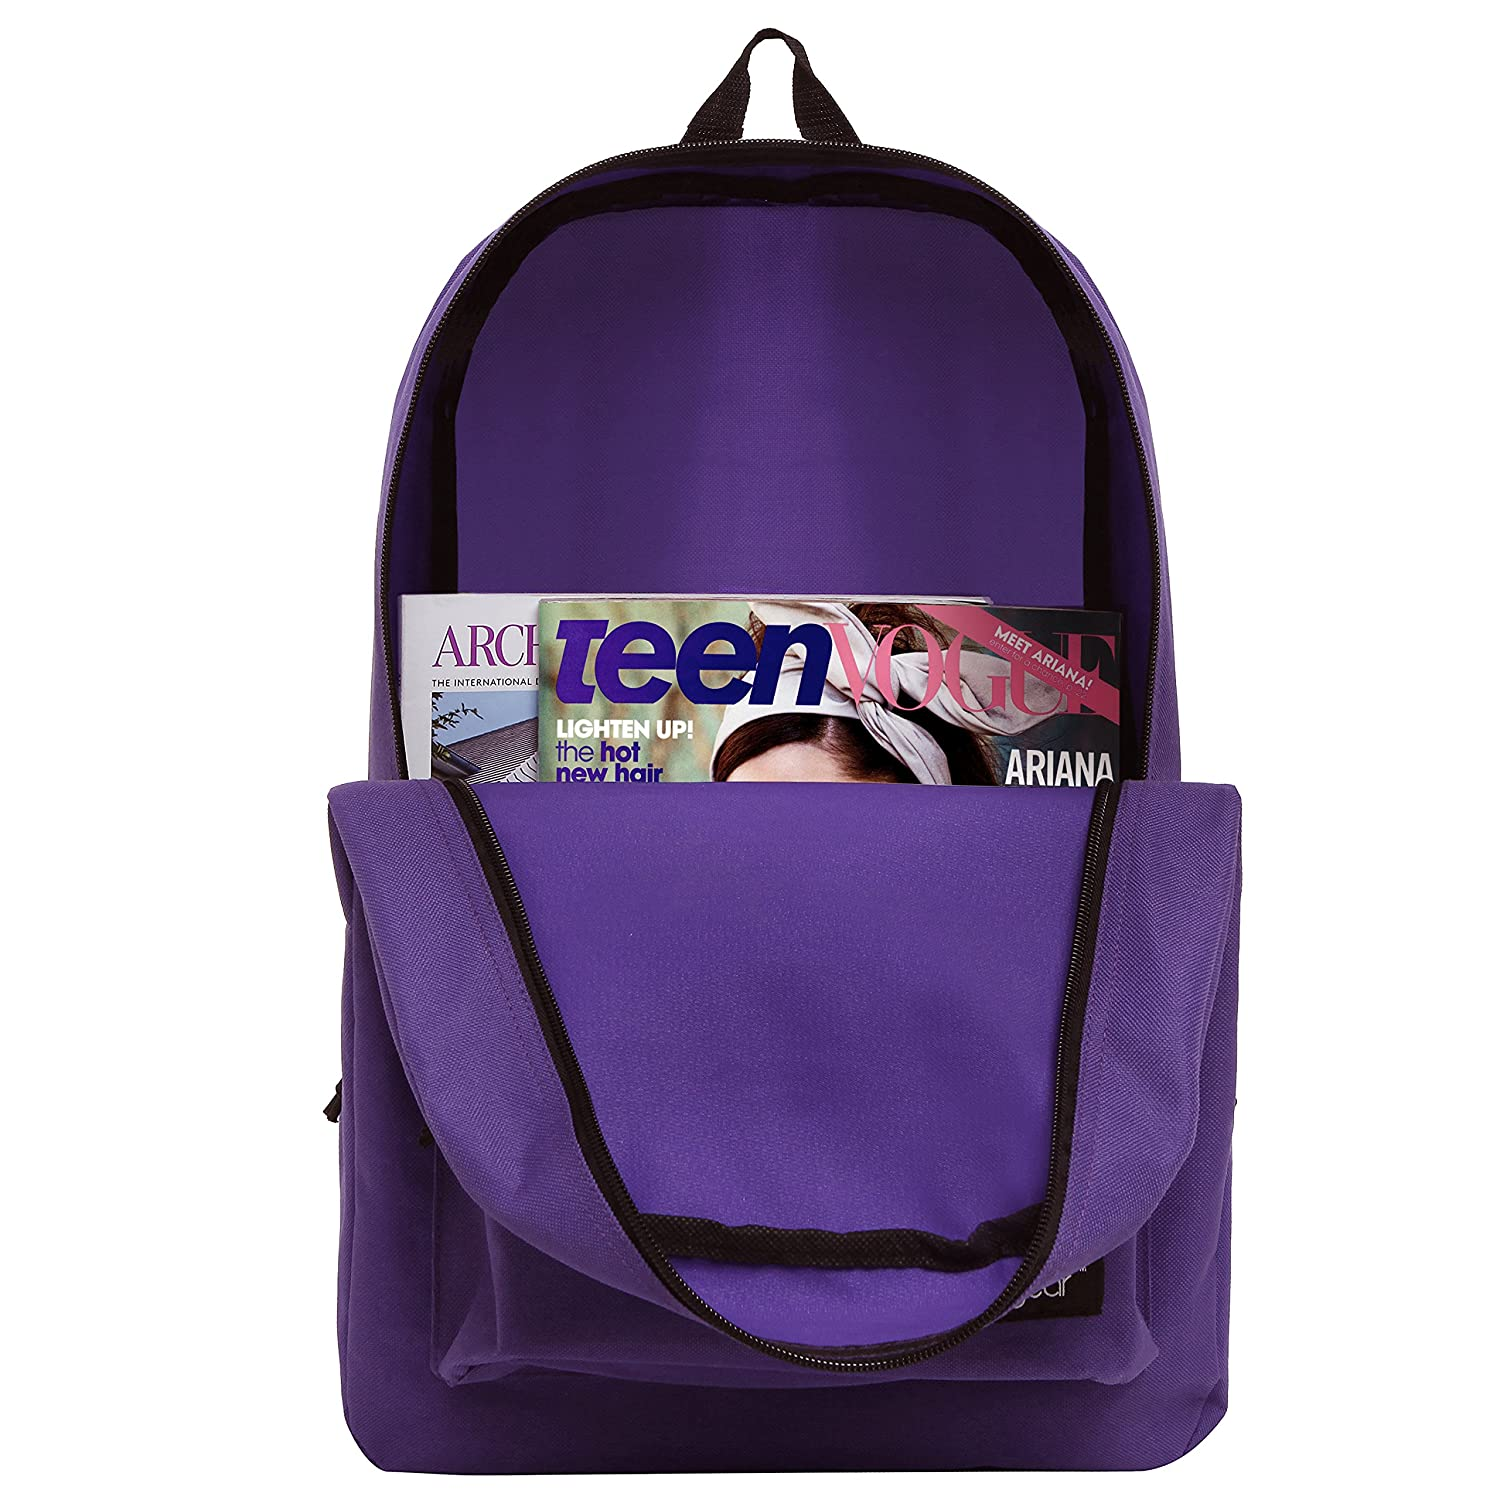 31f6a5a77d Wholesale TrailMaker Classic 16.5 Inch Bookbags for Girls - Case of 24 Bulk School  Bags - Plum   Pink   Purple   Turquoise  Amazon.co.uk  Clothing